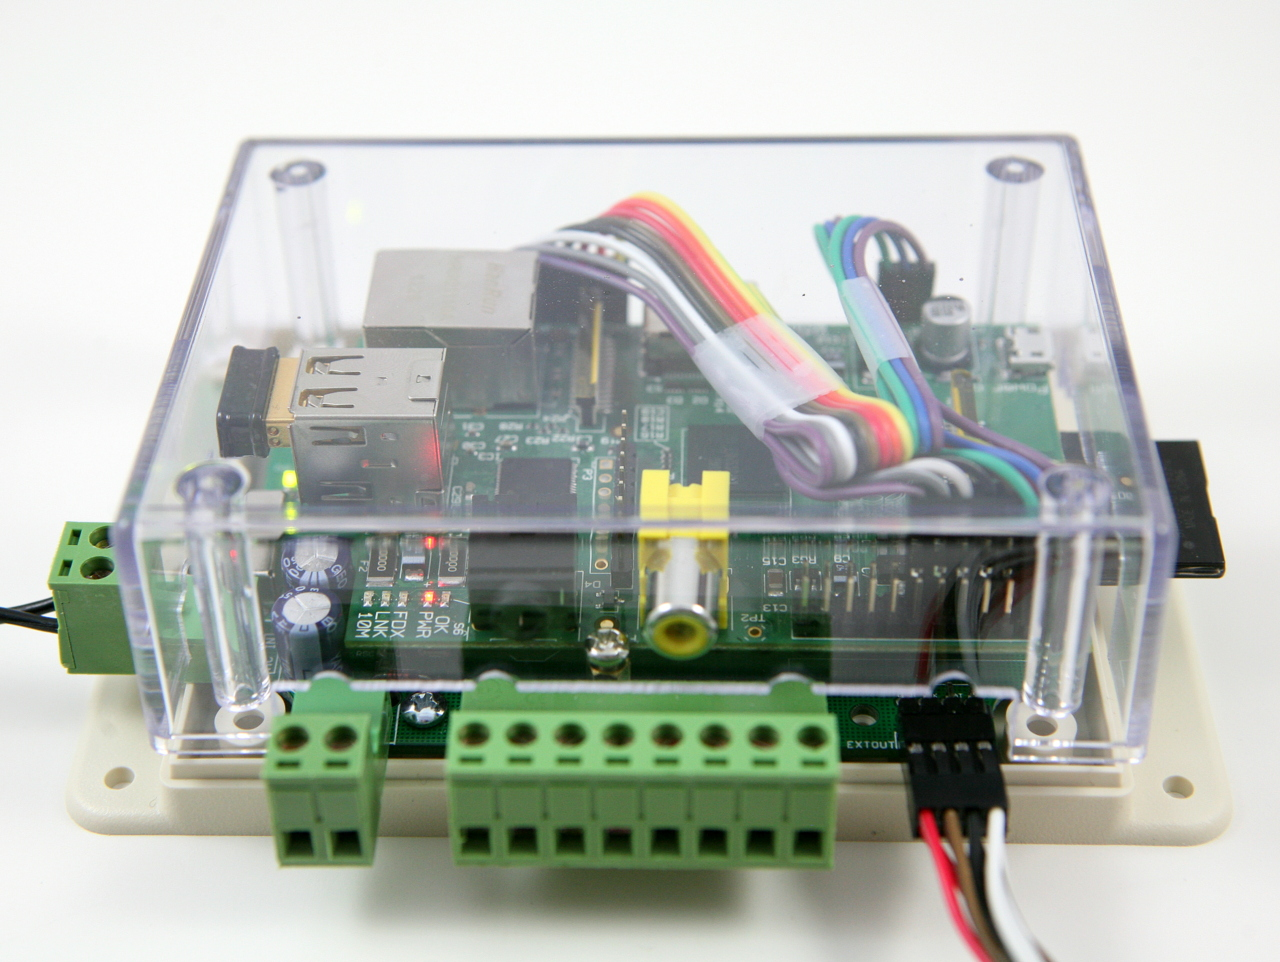 Home Security Systems Diy Using Android And Arduino Pdf